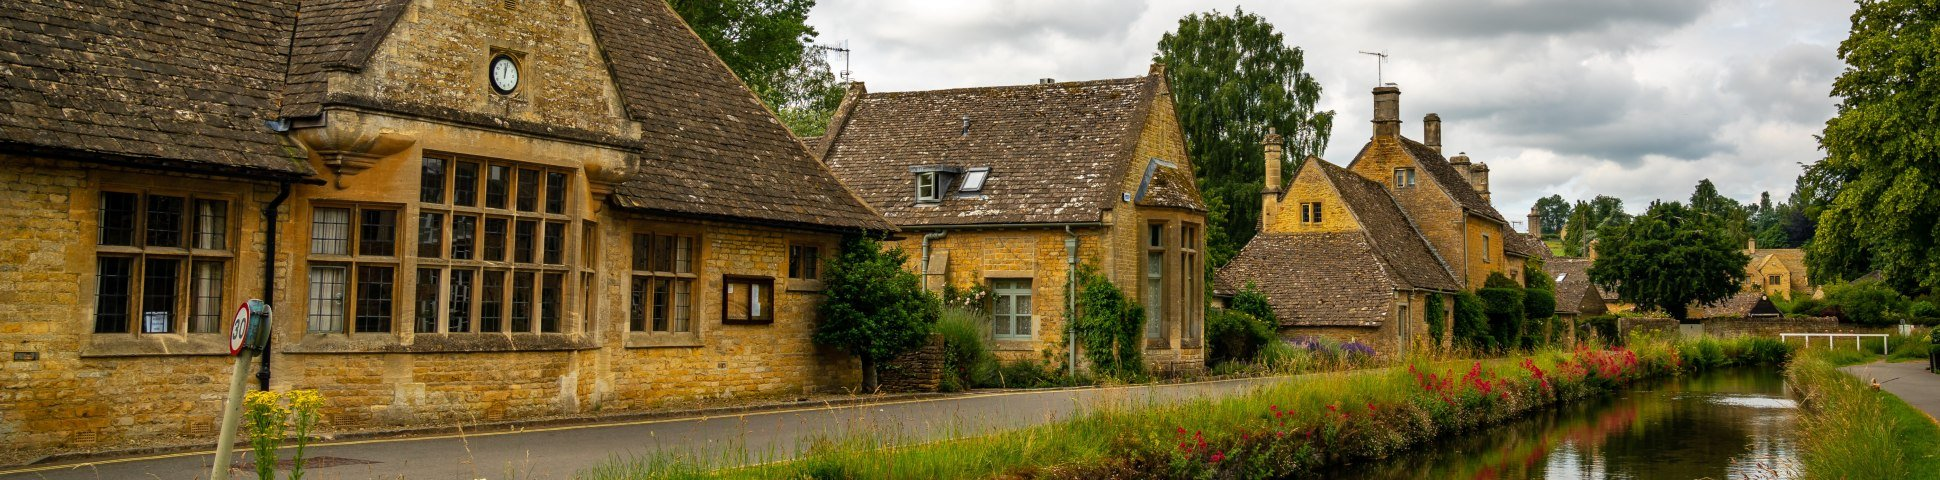 Cotswolds (England)